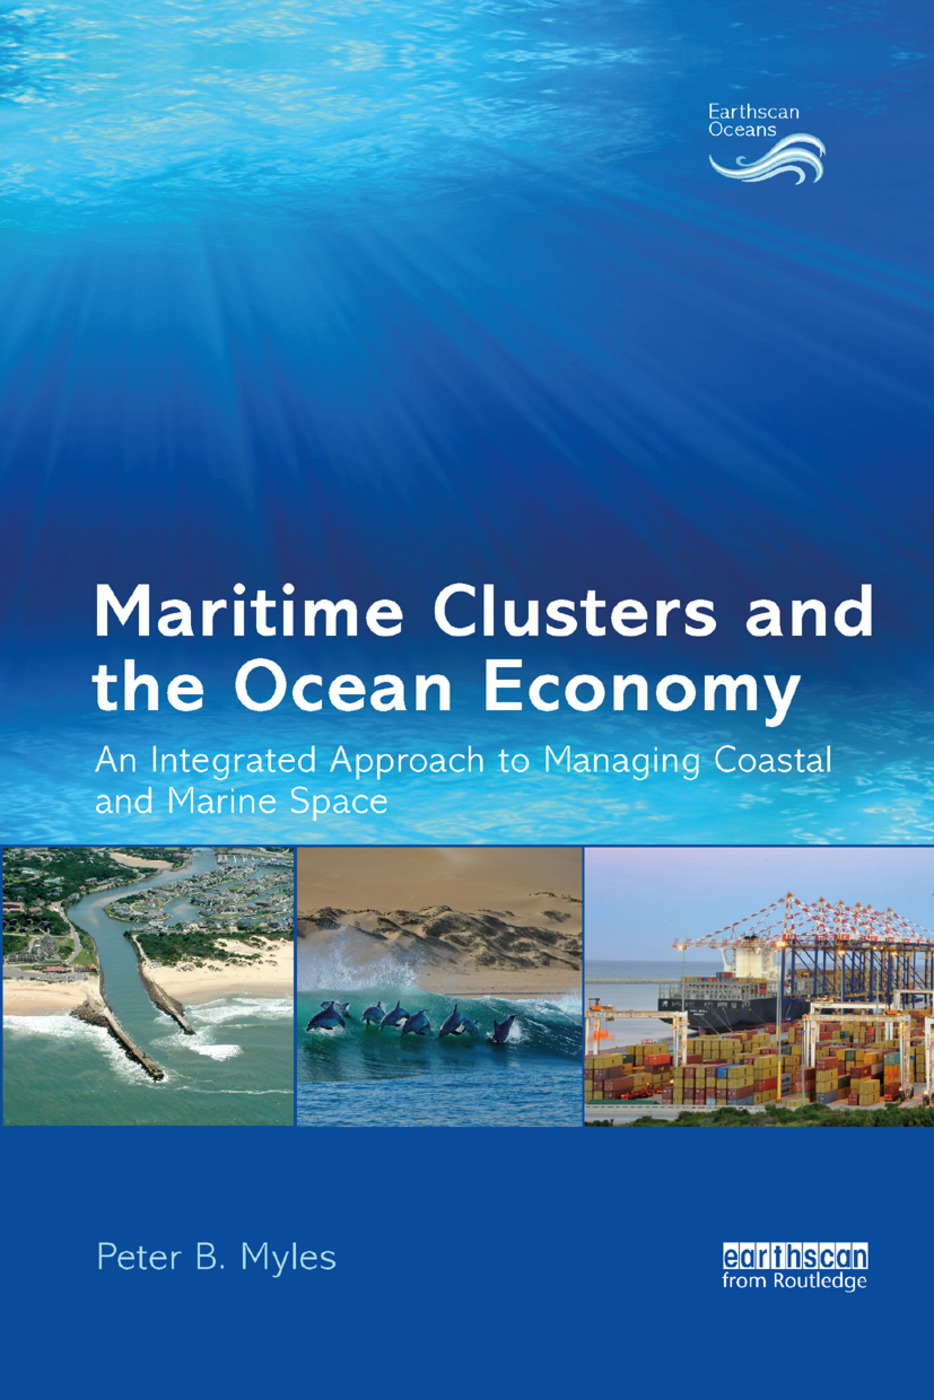 Maritime Clusters and the Ocean Economy: An Integrated Approach to Managing Coastal and Marine Space book cover